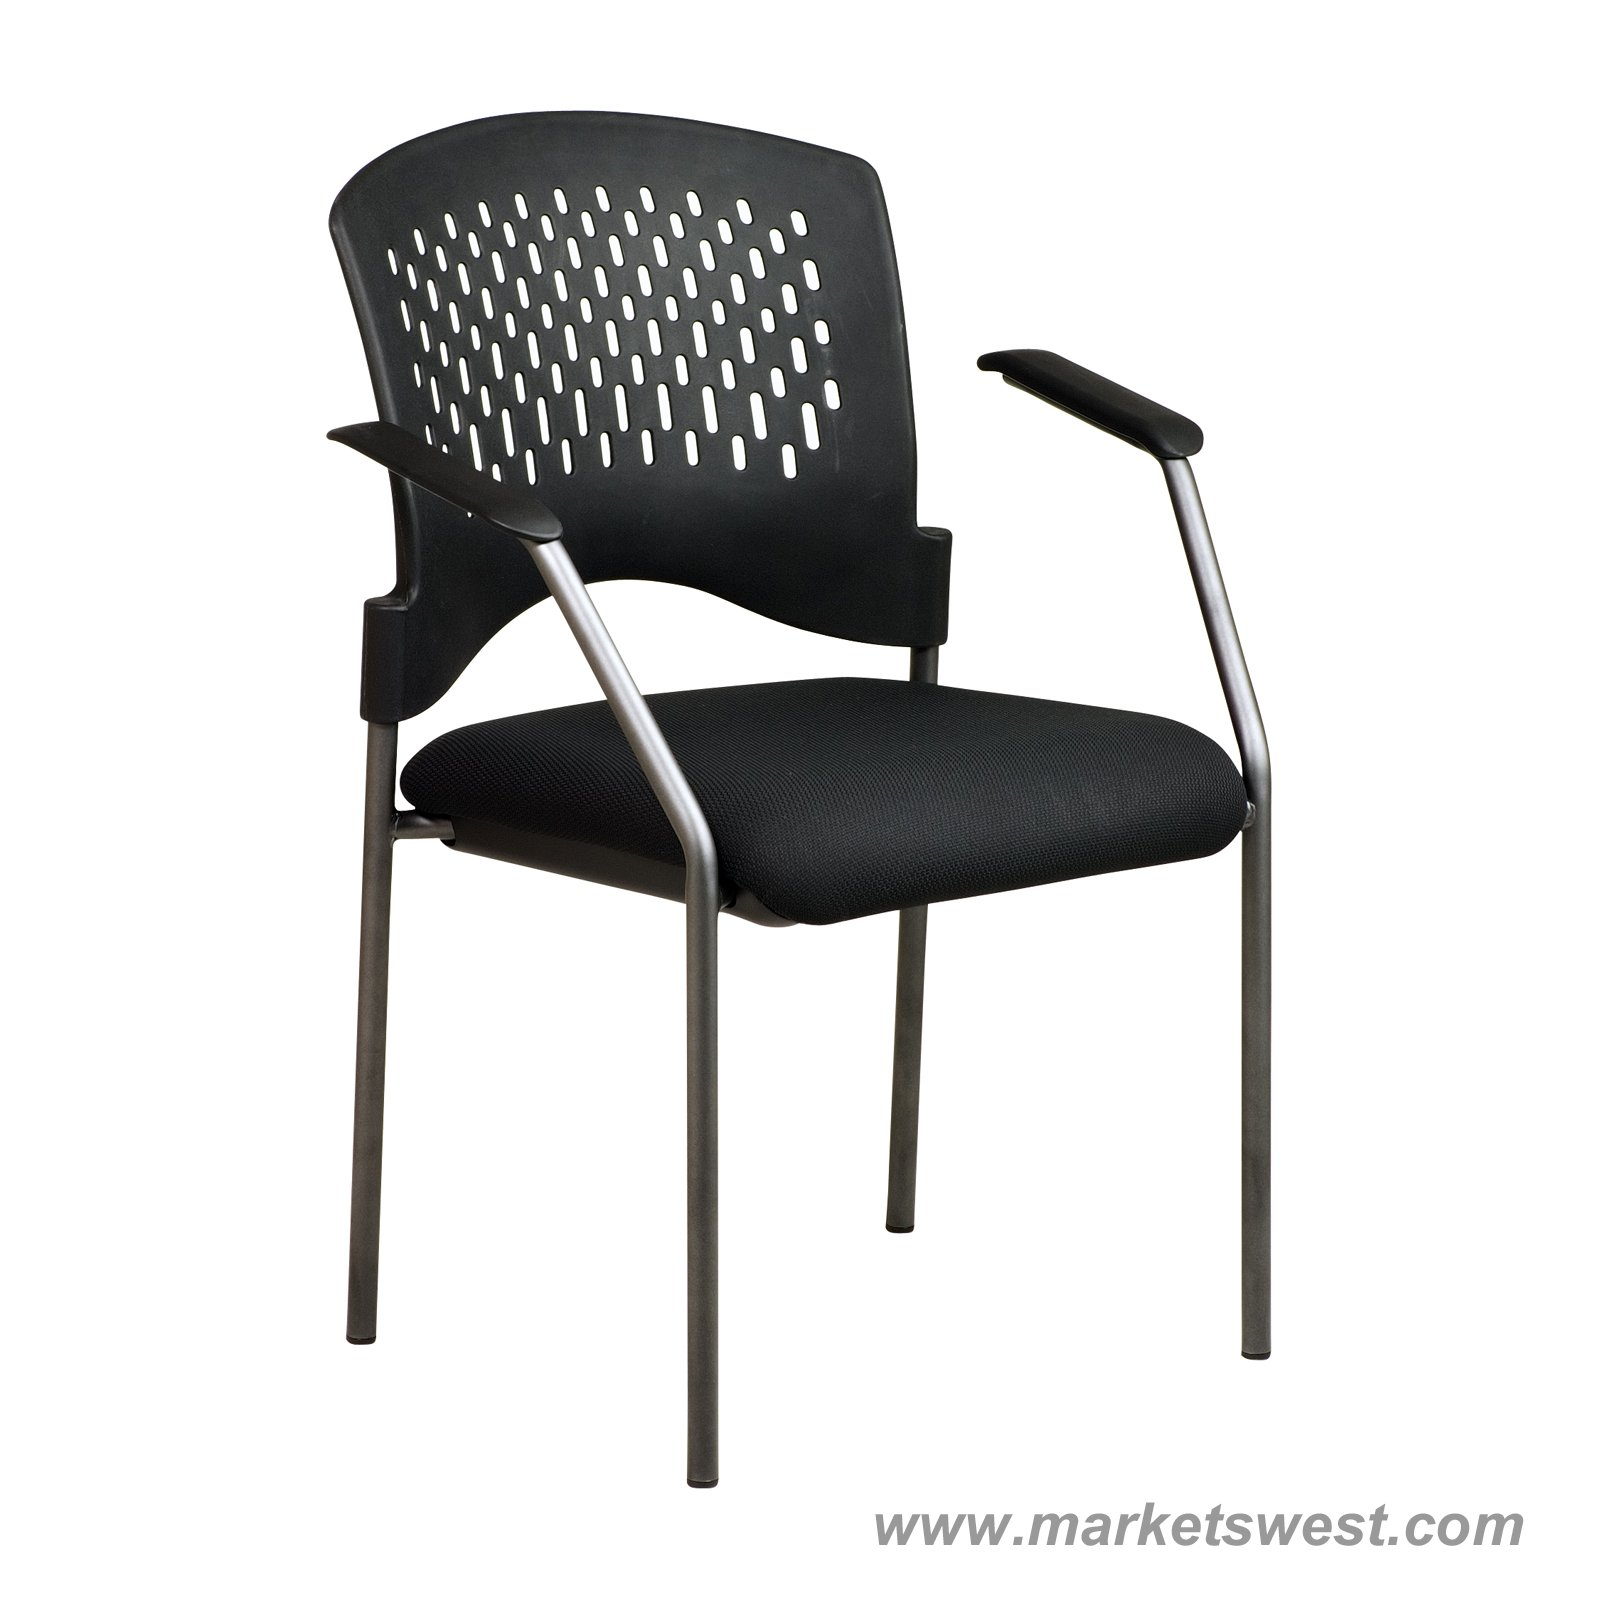 Pro Line II Titanium Finish Black Visitors Chair With Arms And Ventilated Plastic  Wrap Around Back